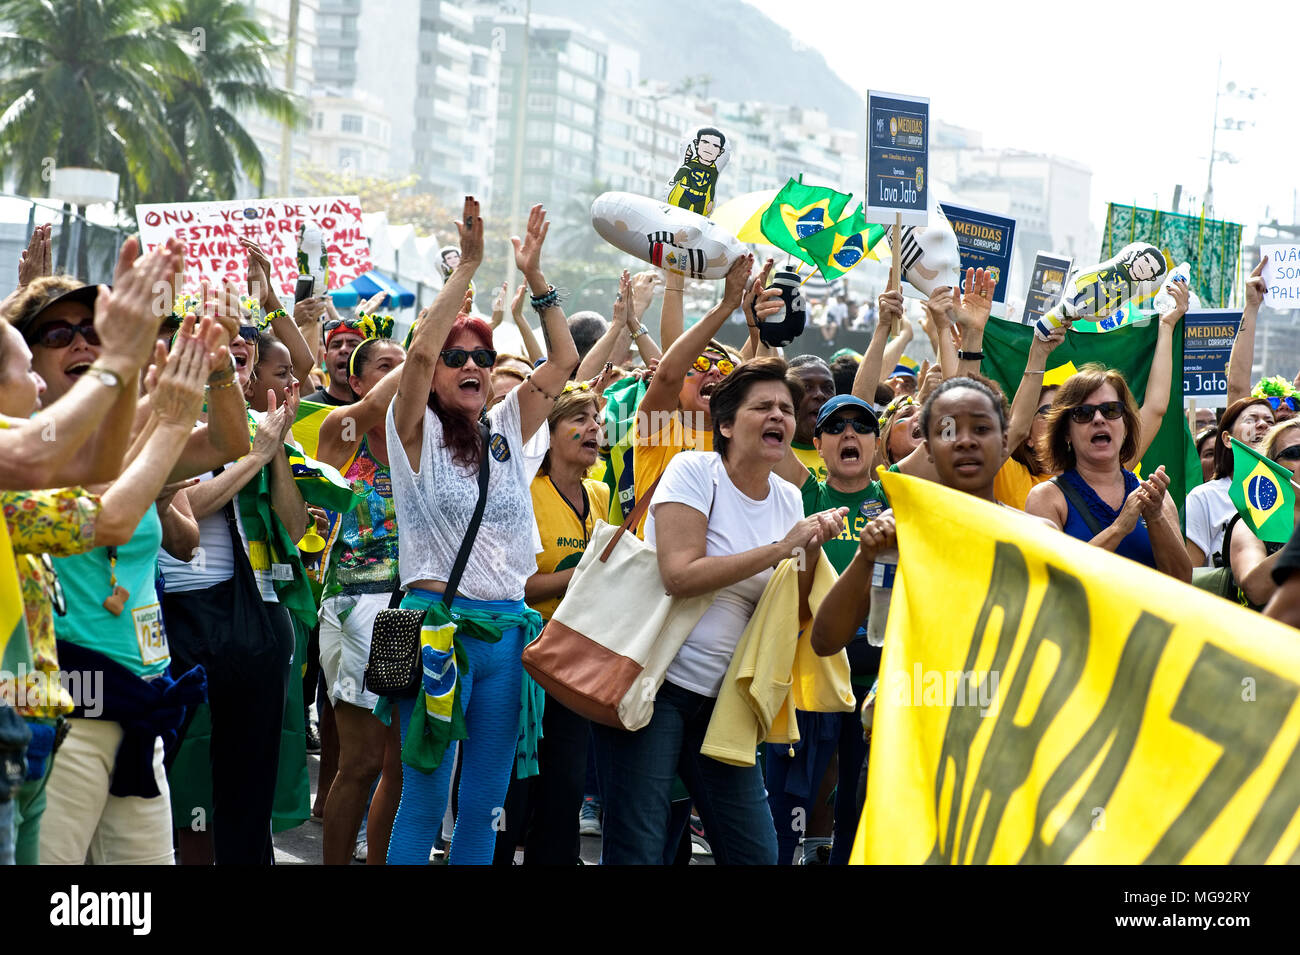 Copacabana beach, Rio de Janeiro - July 31, 2016: Demonstrators protest against corruption in Brazil and the government of President Dilma Rousseff - Stock Image